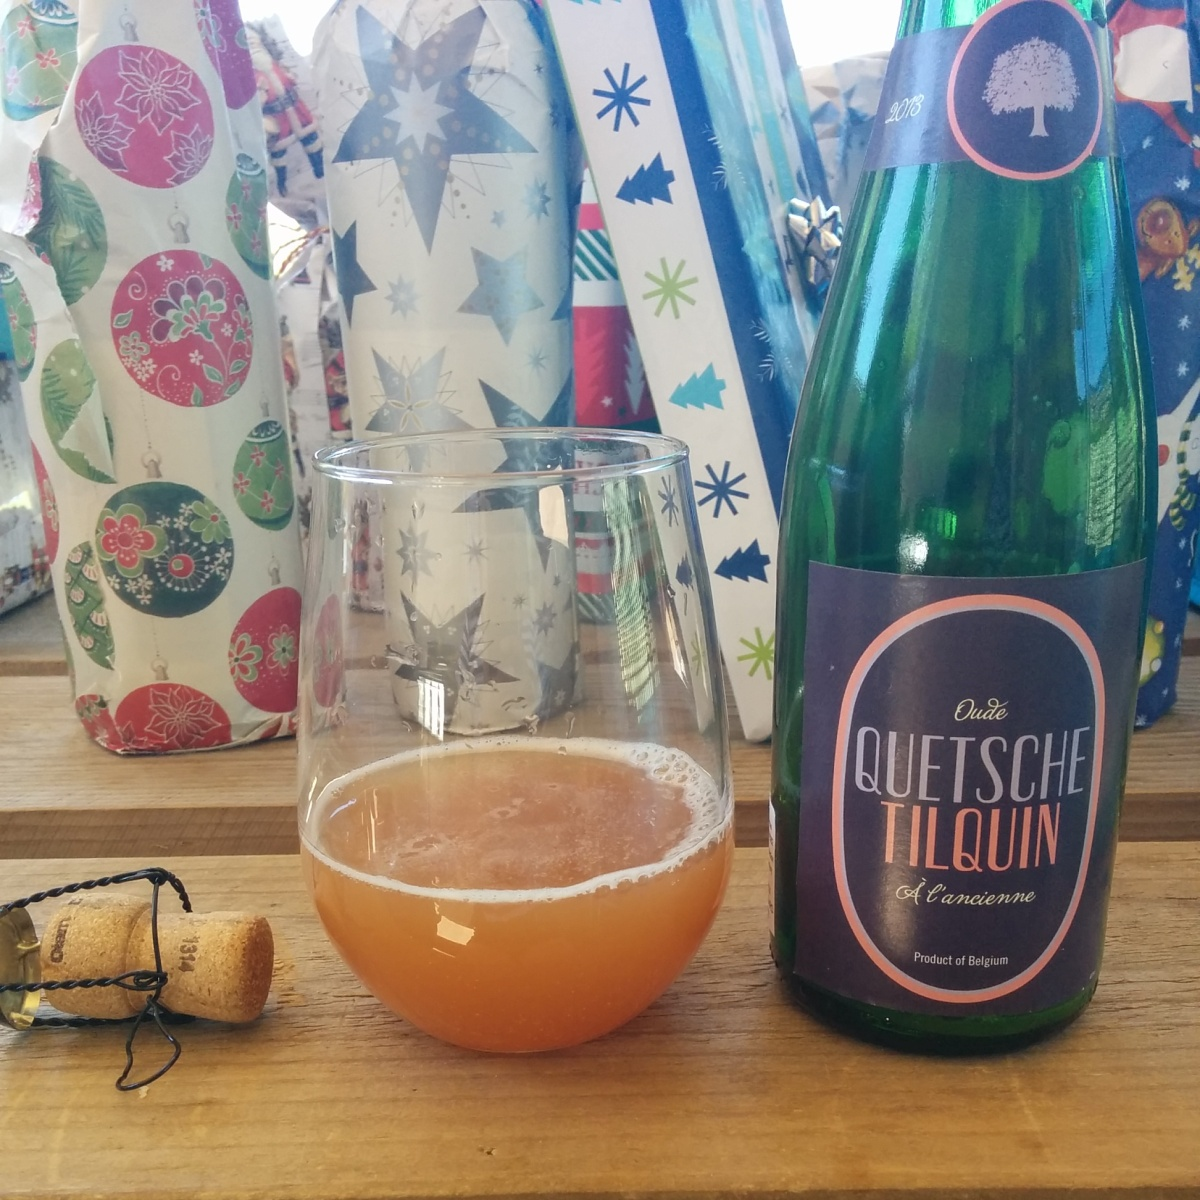 Beer of the Moment – Oude Quetsche Tilquin á L'Ancienne